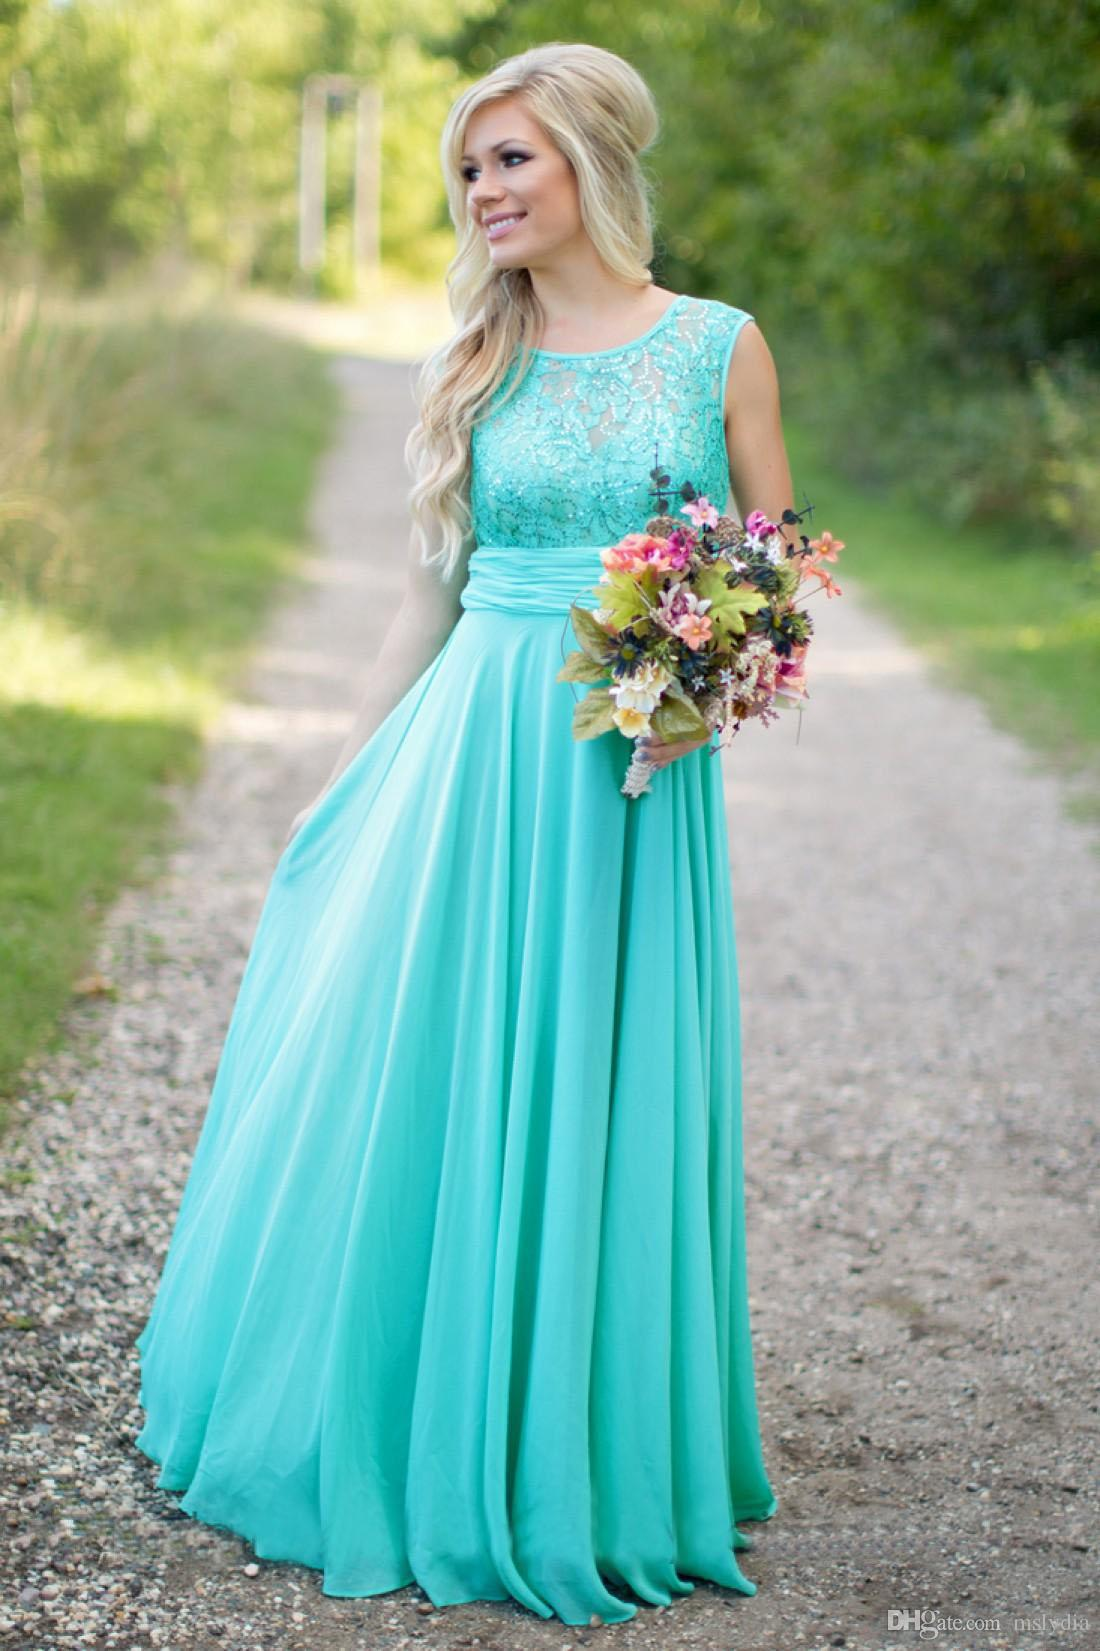 2018 new long bridesmaid dresses lace top chiffon skirt turquoise 2018 new long bridesmaid dresses lace top chiffon skirt turquoise floor length jewel neck country wedding guest dress gown alternative bridesmaid dresses ombrellifo Image collections